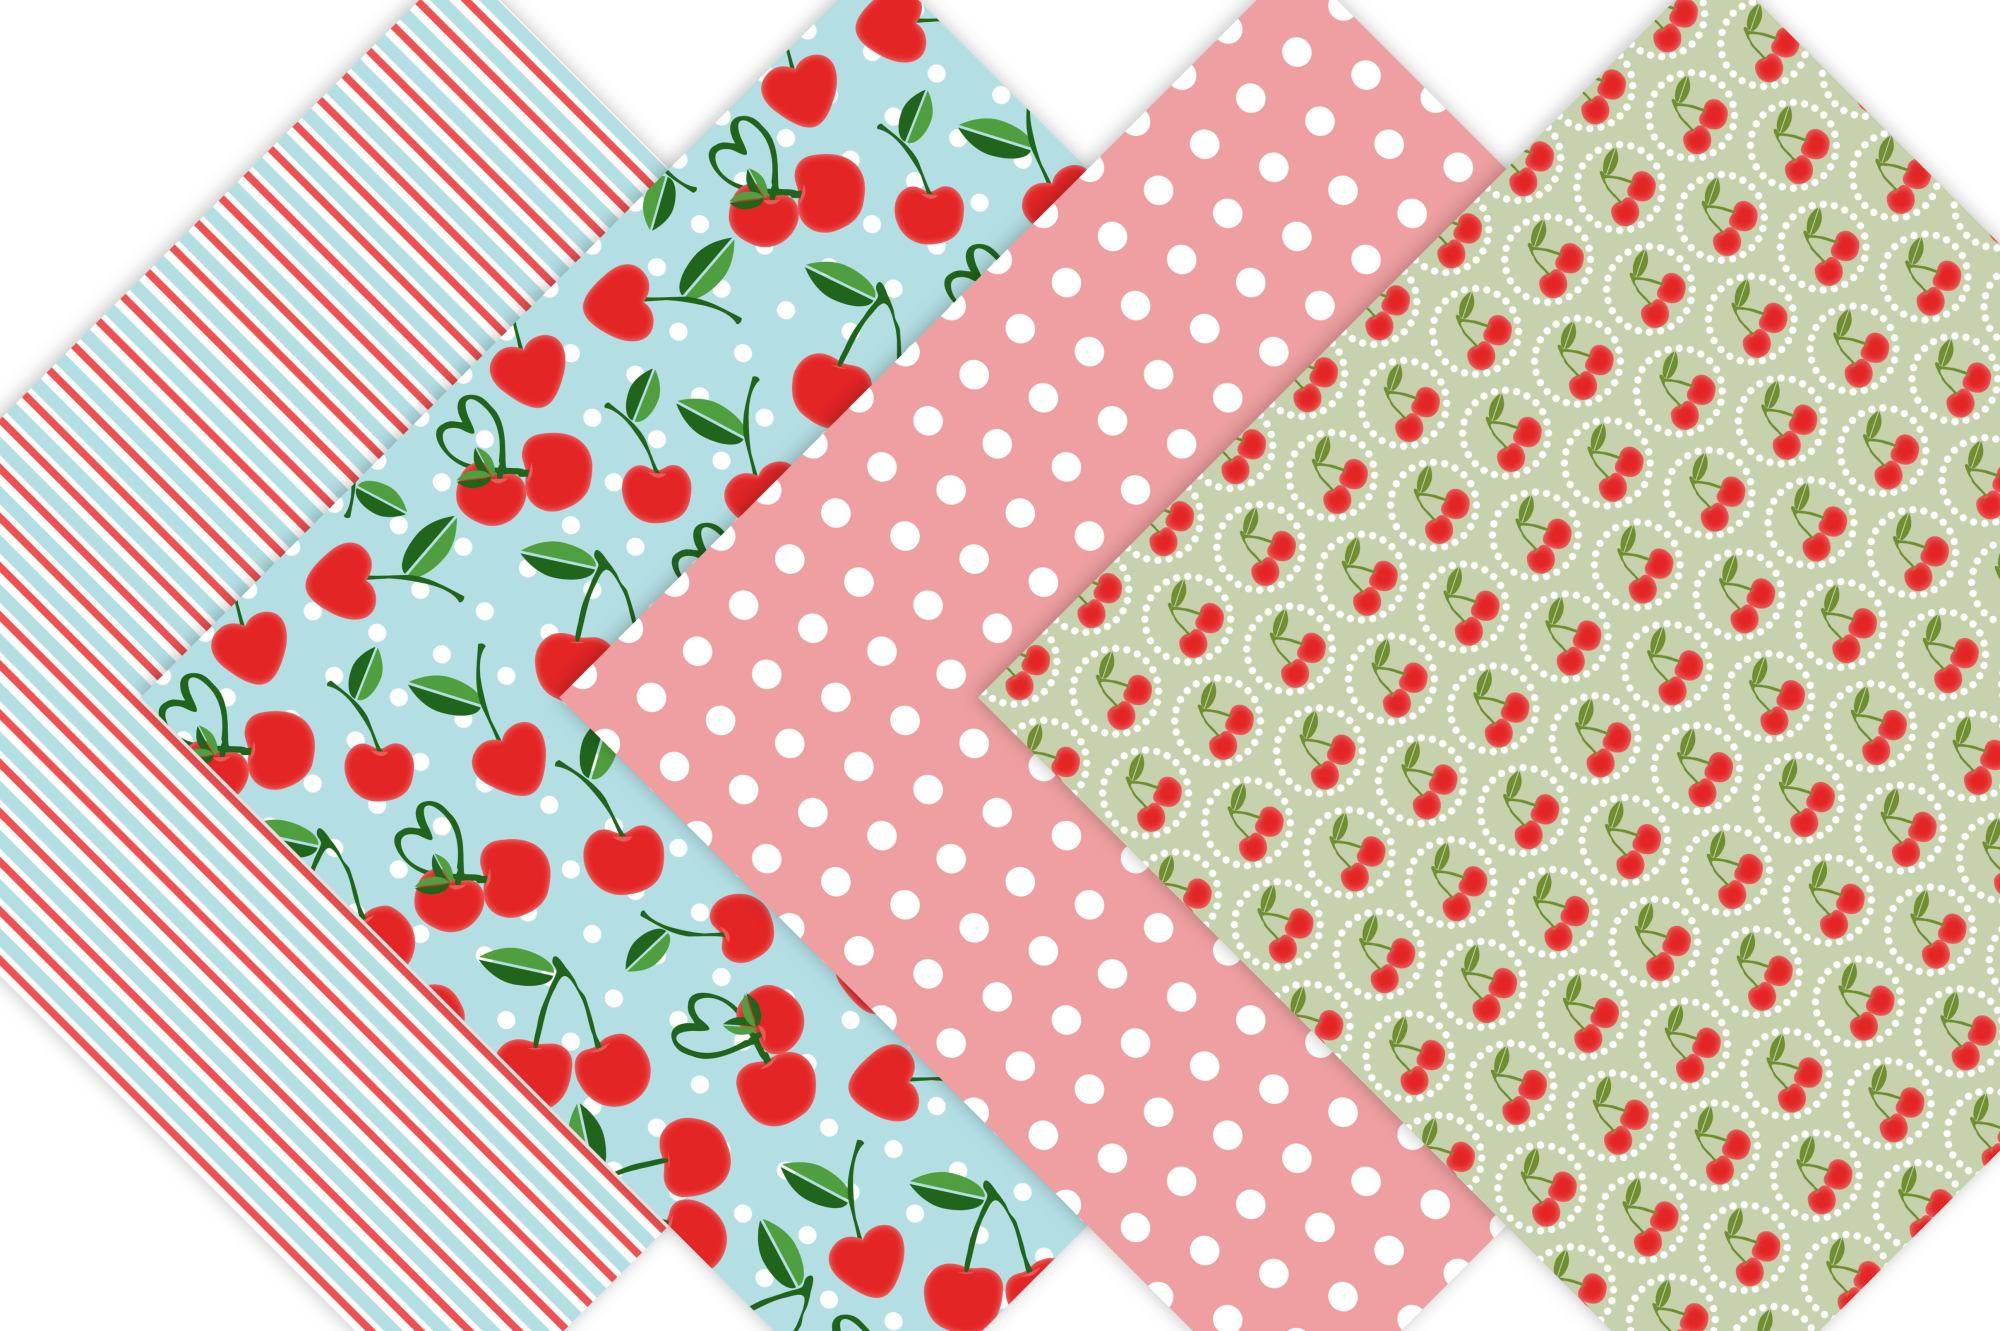 Cherry Digital Paper - Cottage Chic example image 2